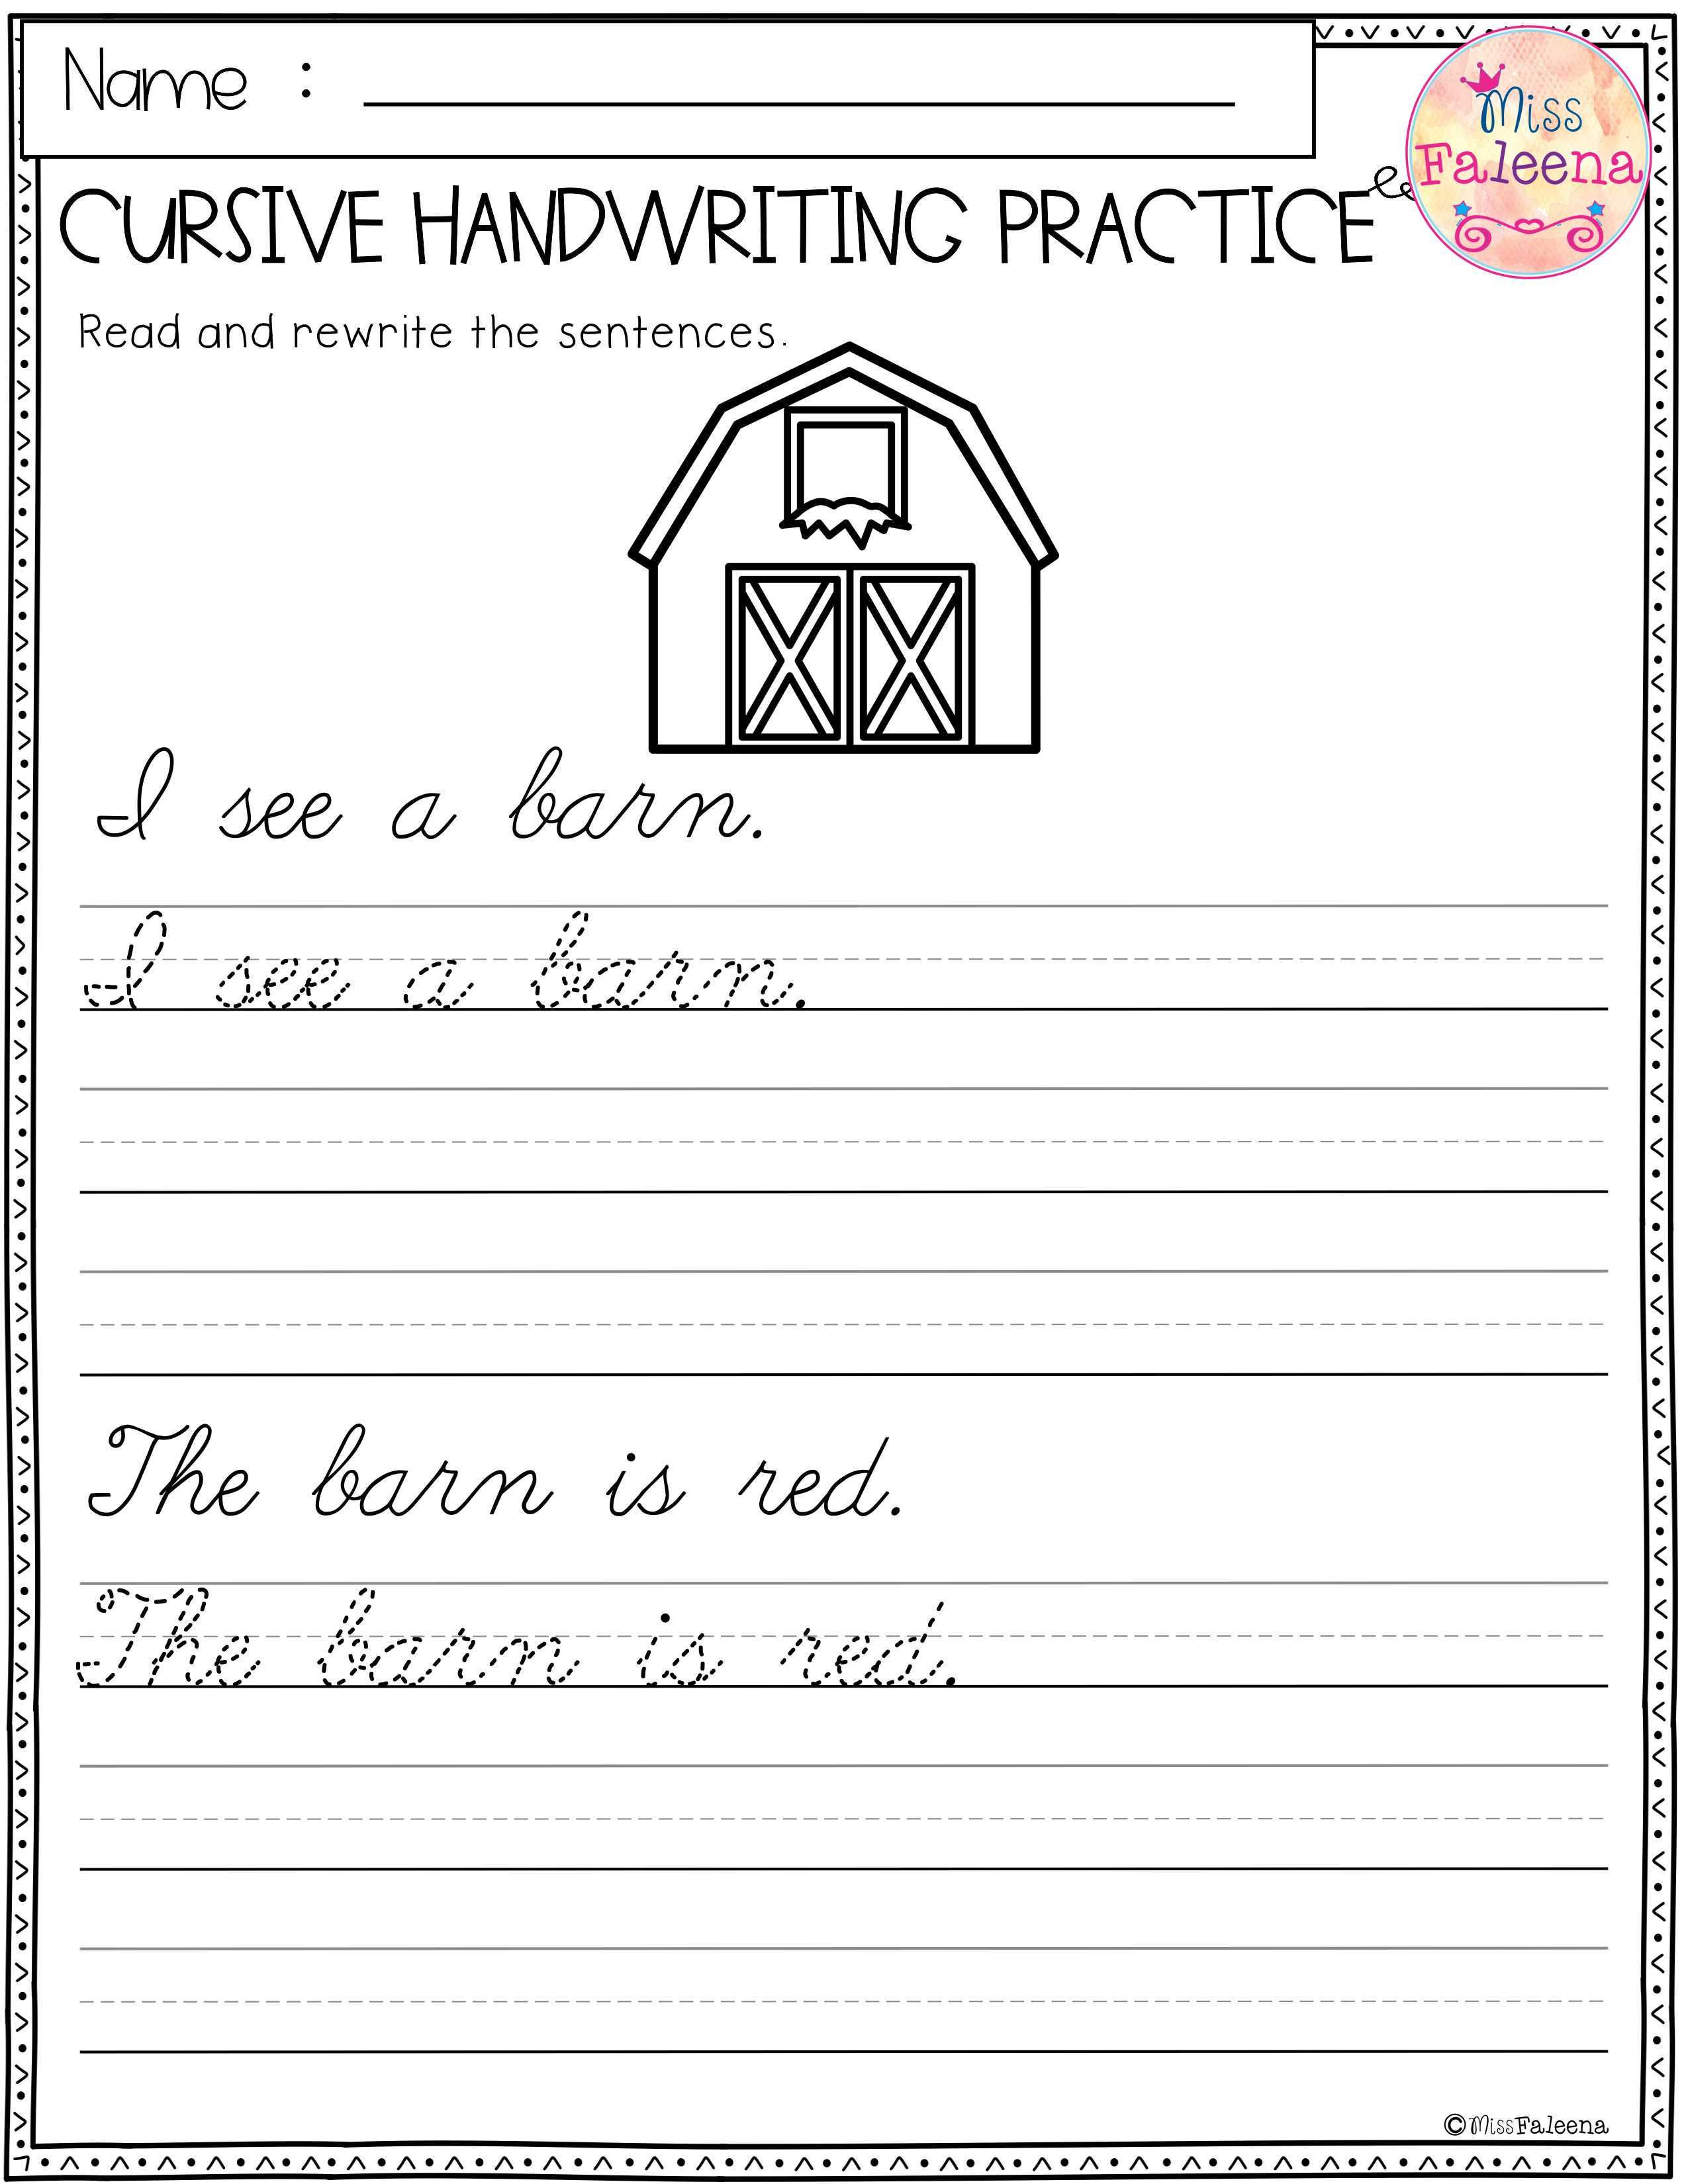 Free Cursive Handwriting This Product Has 5 Pages Of Cursive Handwriting Worksheets Thi Cursive Handwriting Practice Cursive Handwriting Handwriting Practice